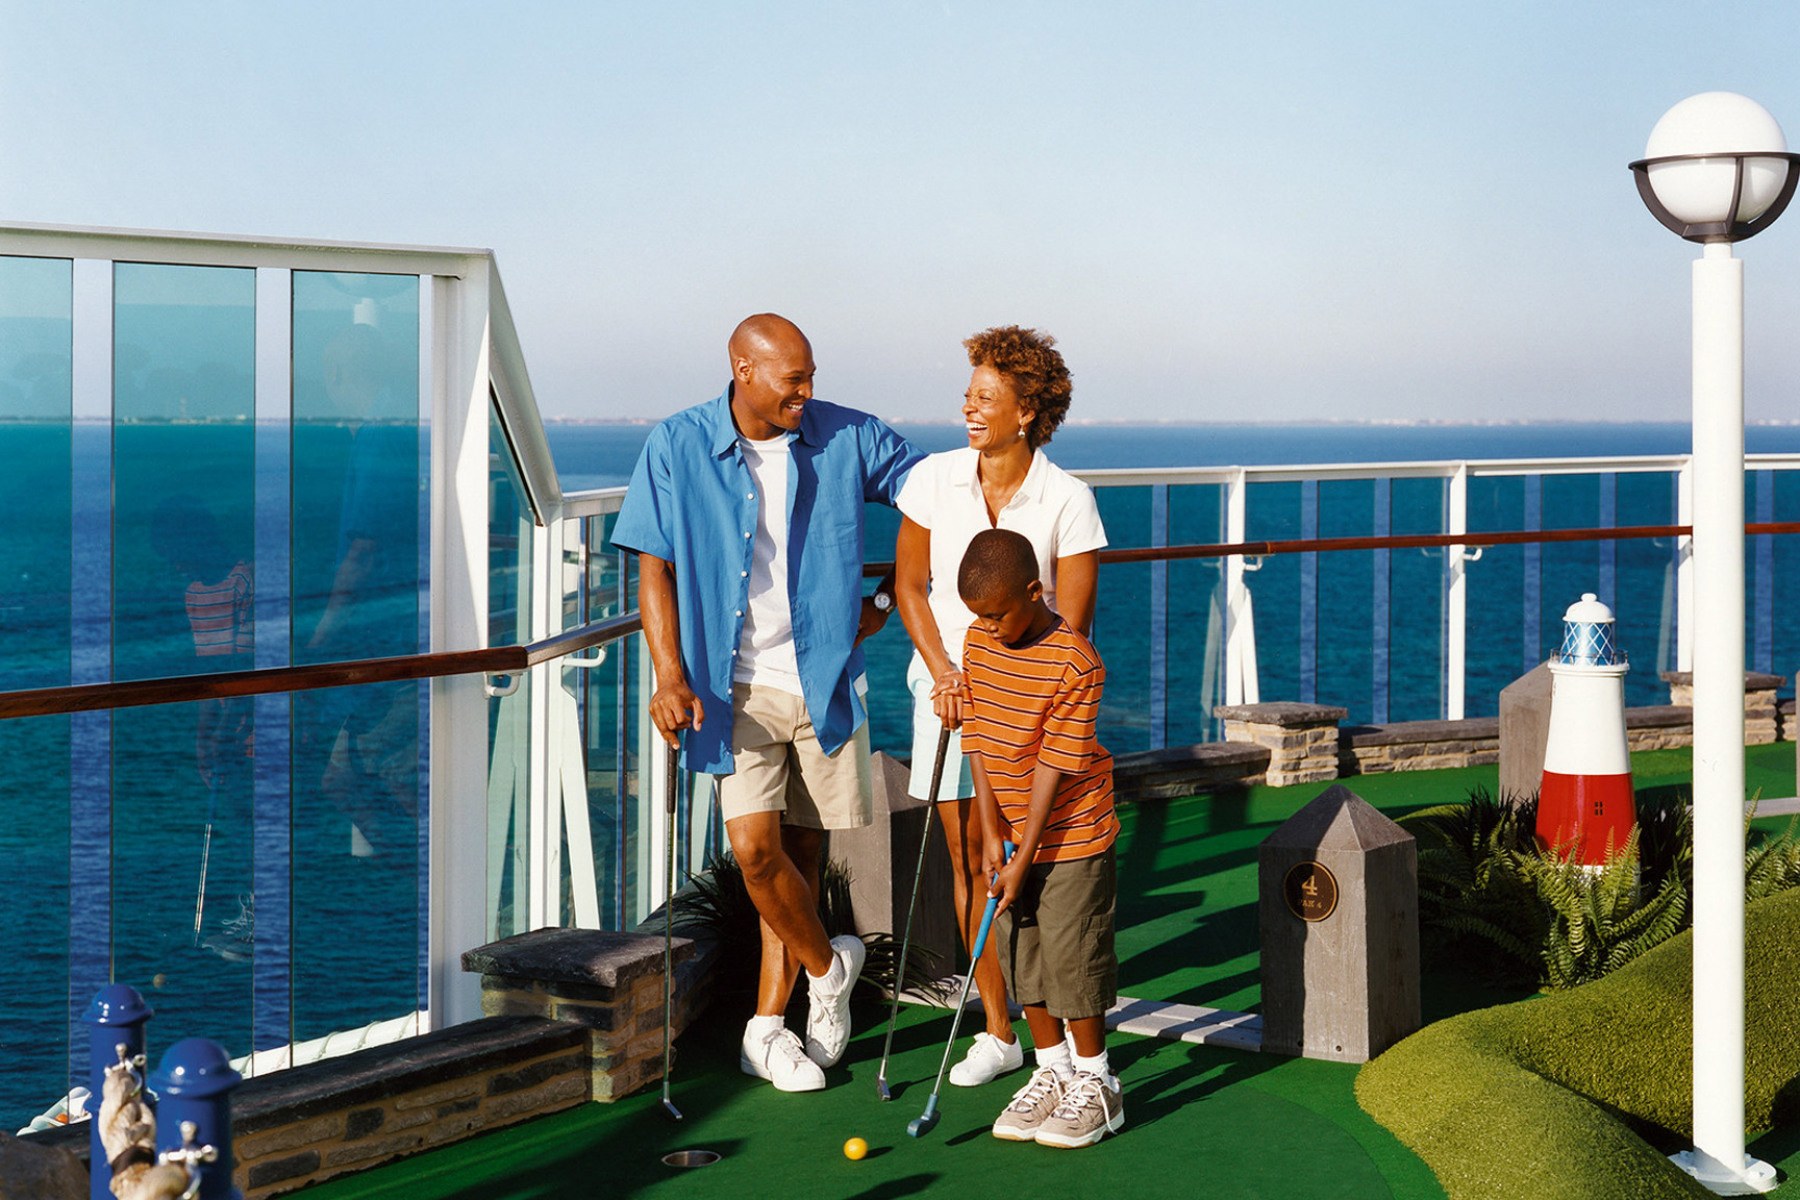 Royal Caribbean International Jewel of the Seas Accommodation Exterior Mini Golf.jpg